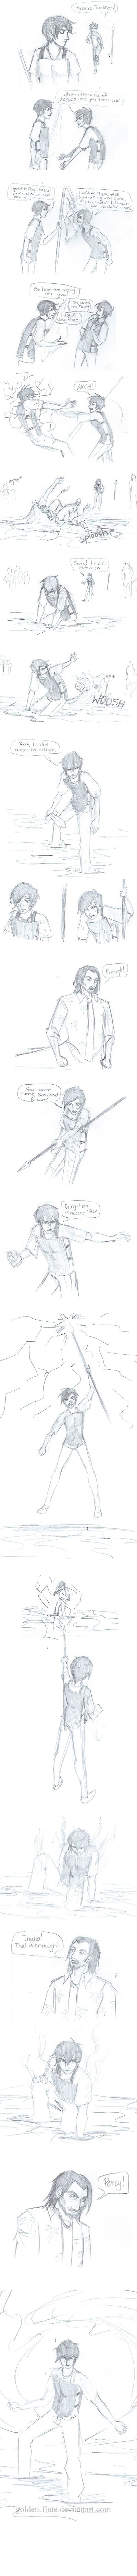 Percy Jackson-- Percy vs. Thalia by Golden-Flute.deviantart.com on @deviantART Comment who you think would win!!!!!